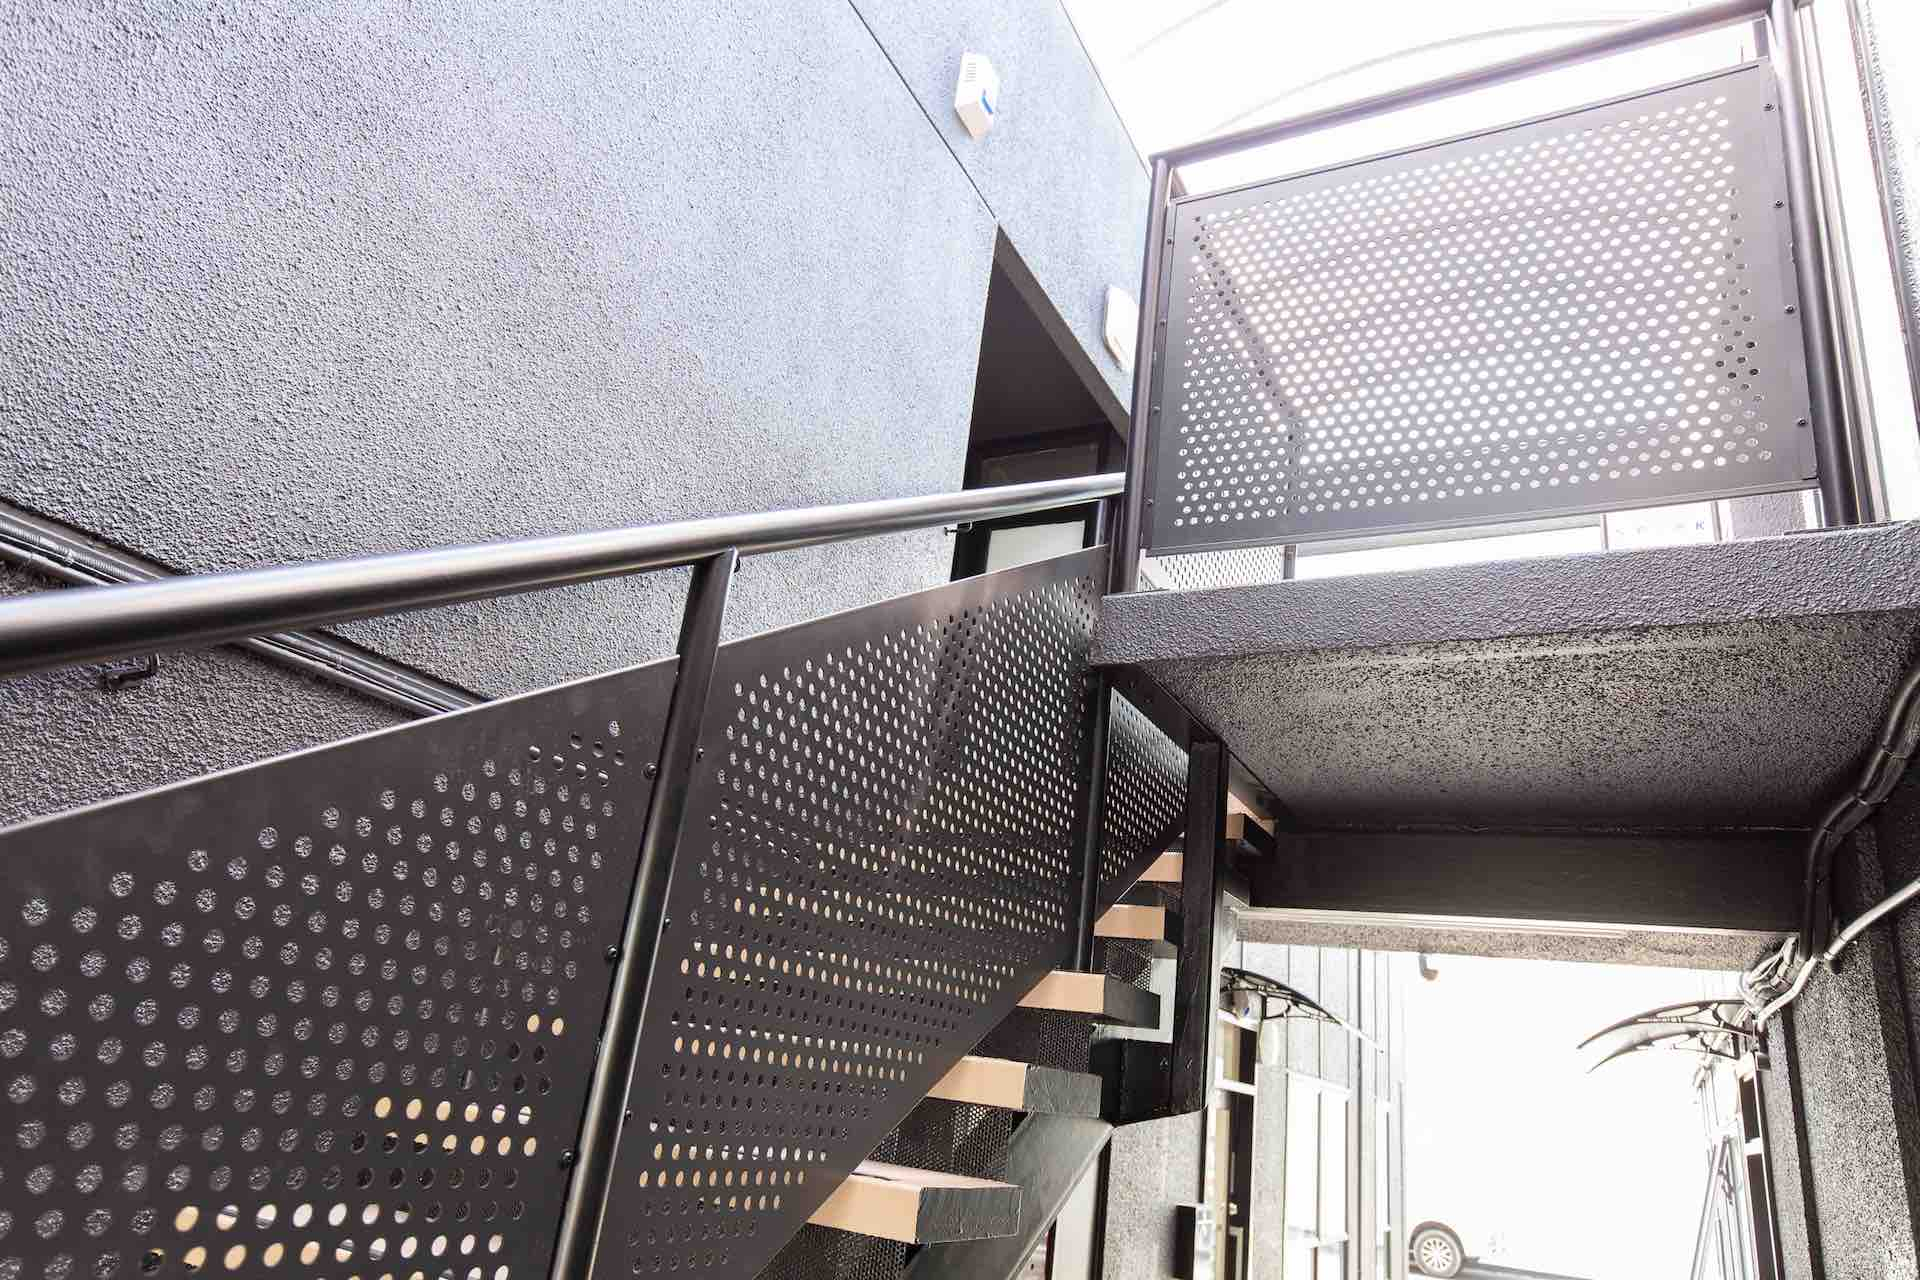 Stairworks can maintain and replace stairs by upgrading the balustrade and handrail system.